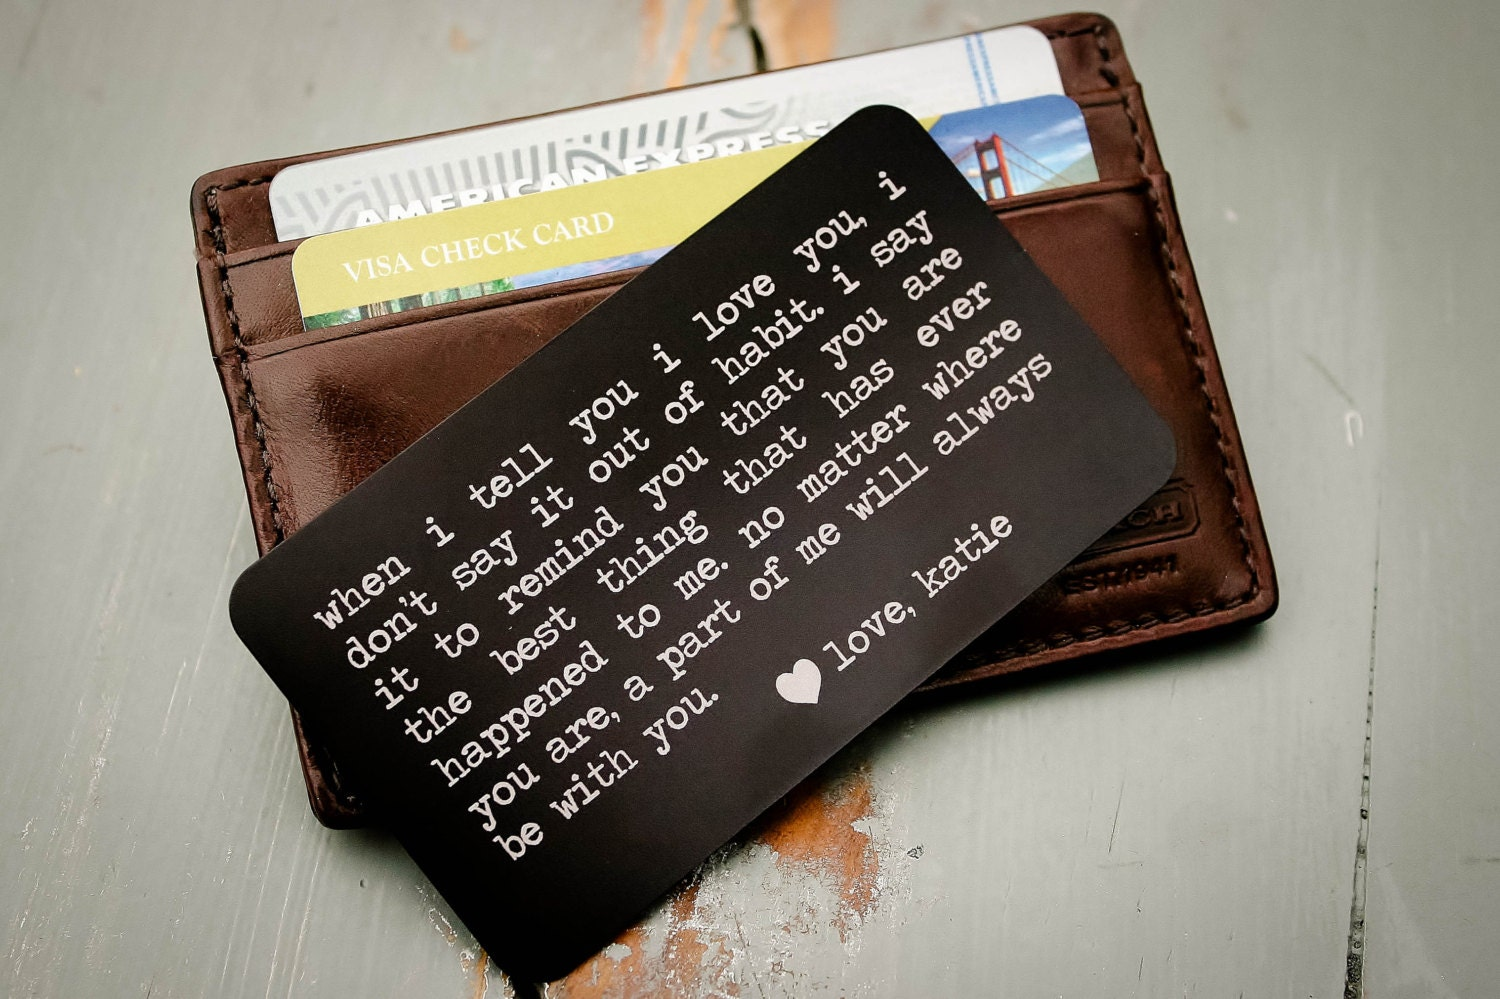 Wedding Gift For Child Of Groom : Personalized Wallet Insert Engraved Wallet Card: Father of